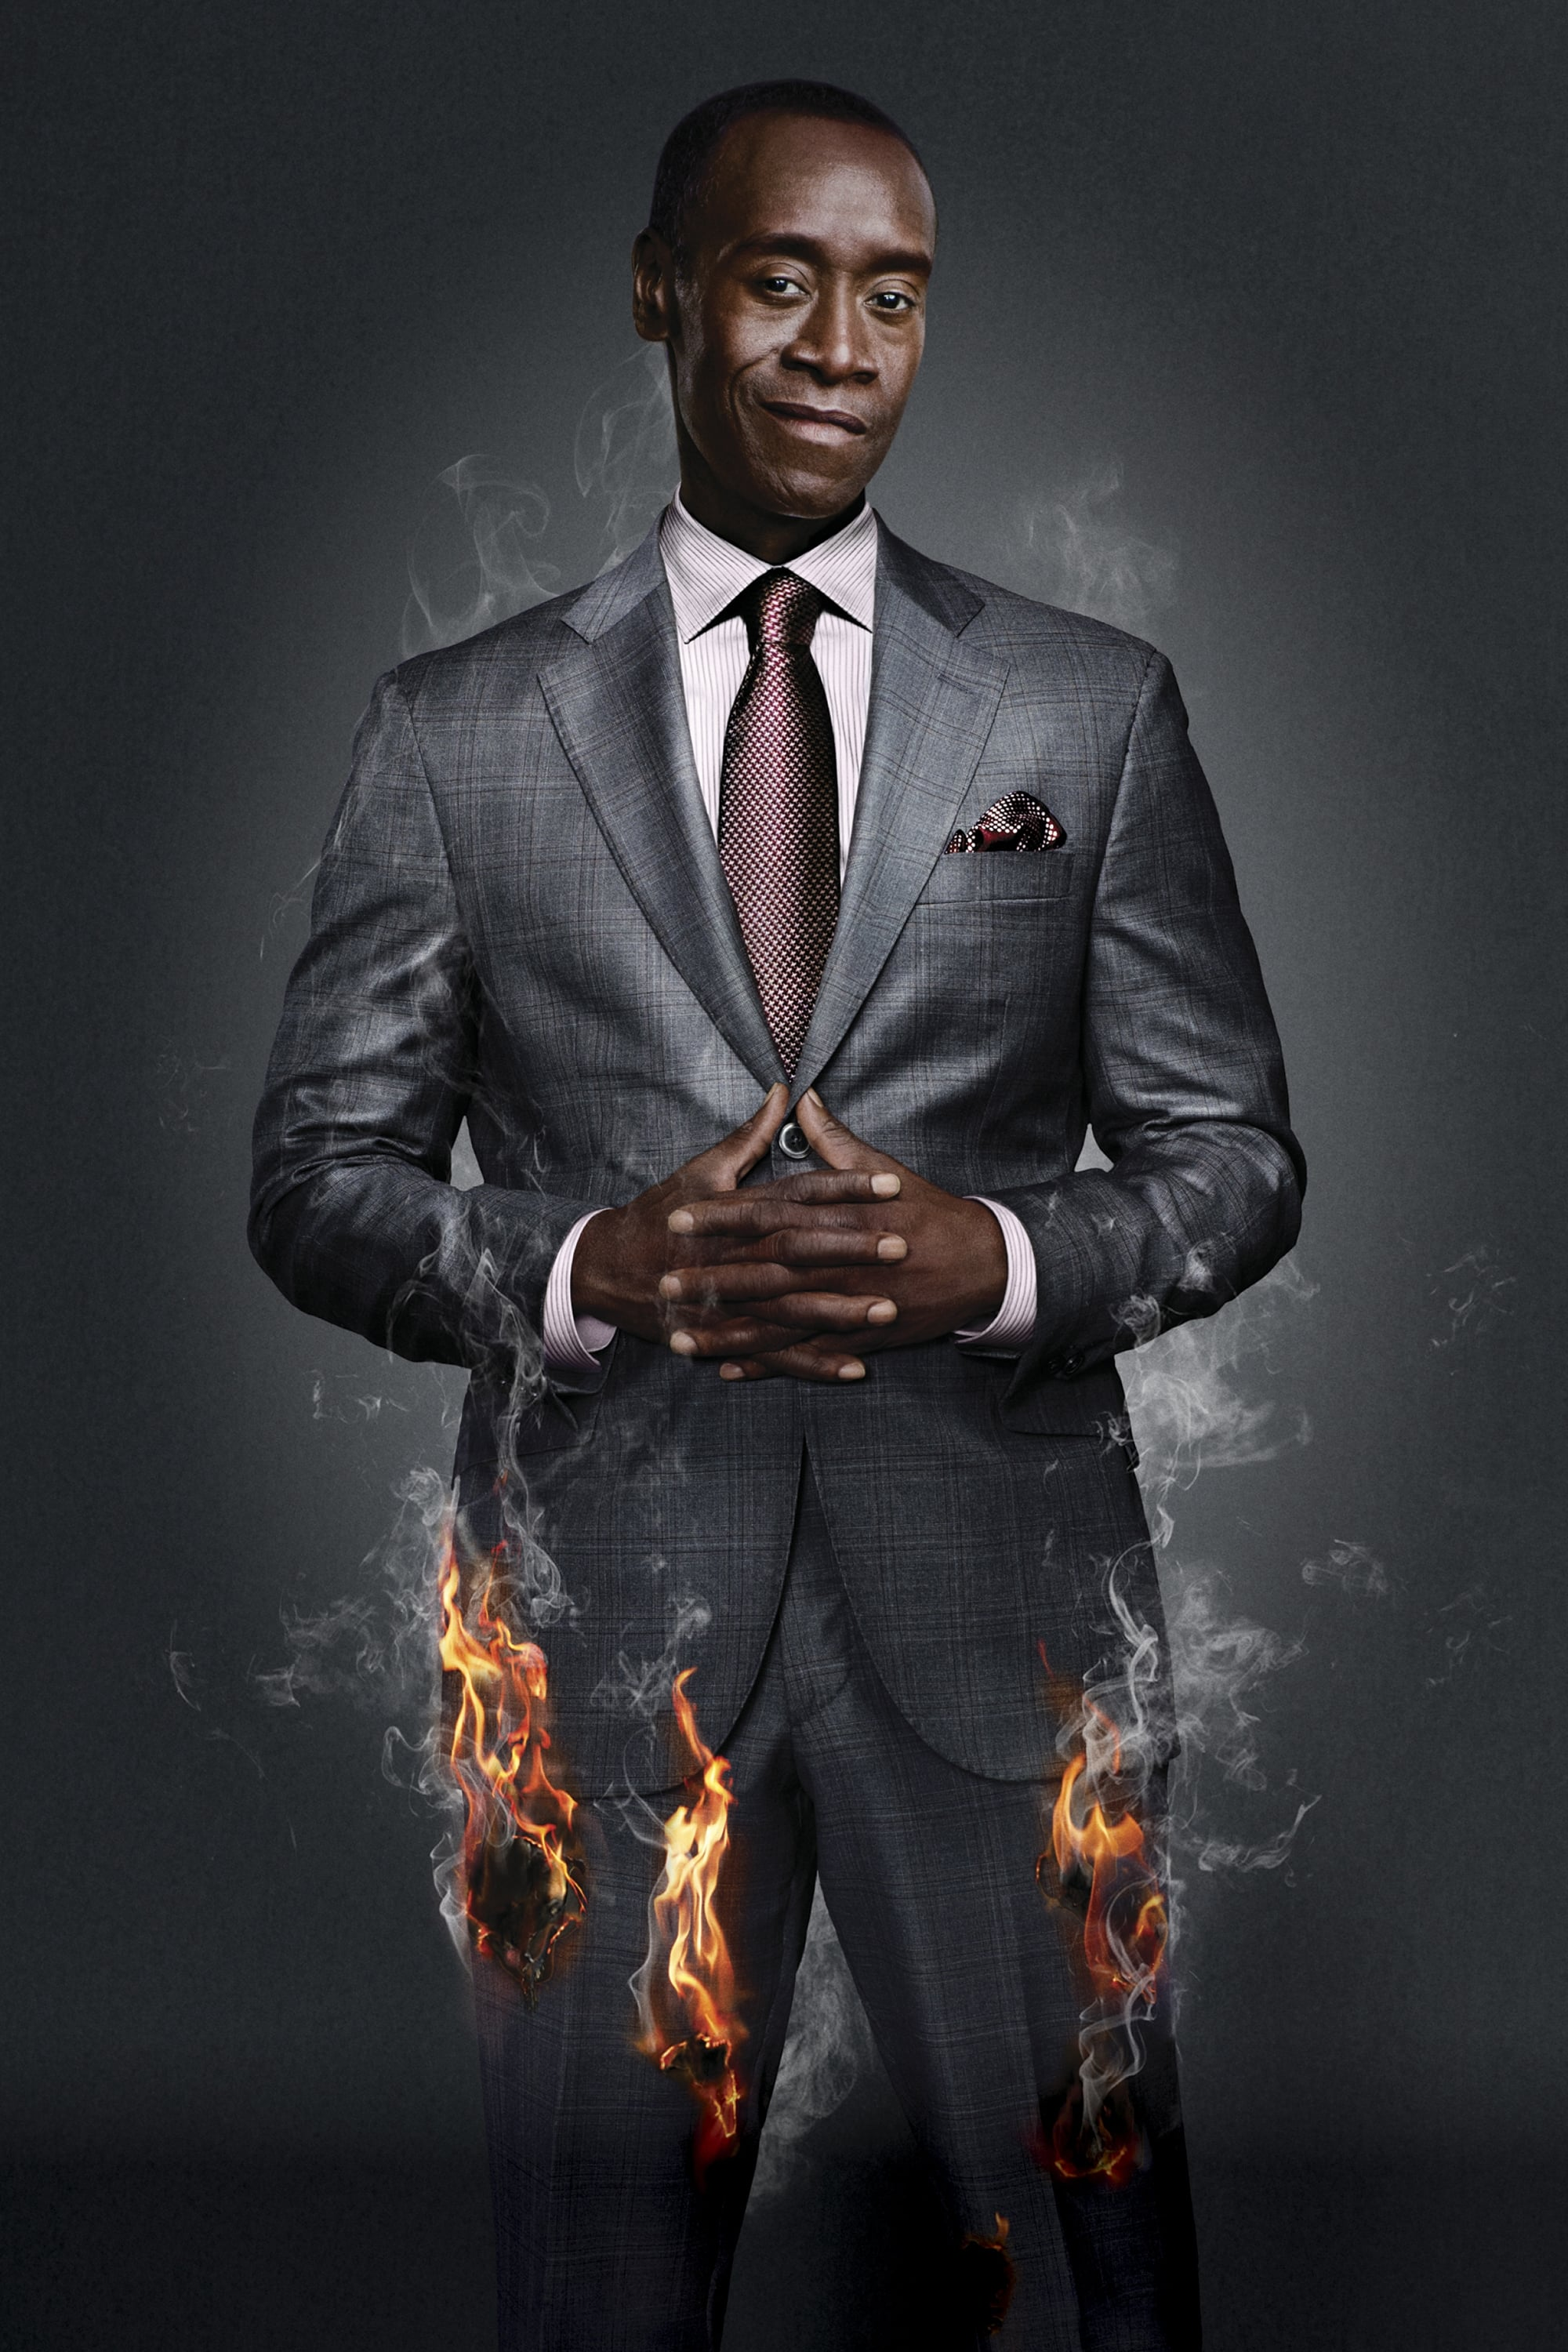 House of Lies (2012)